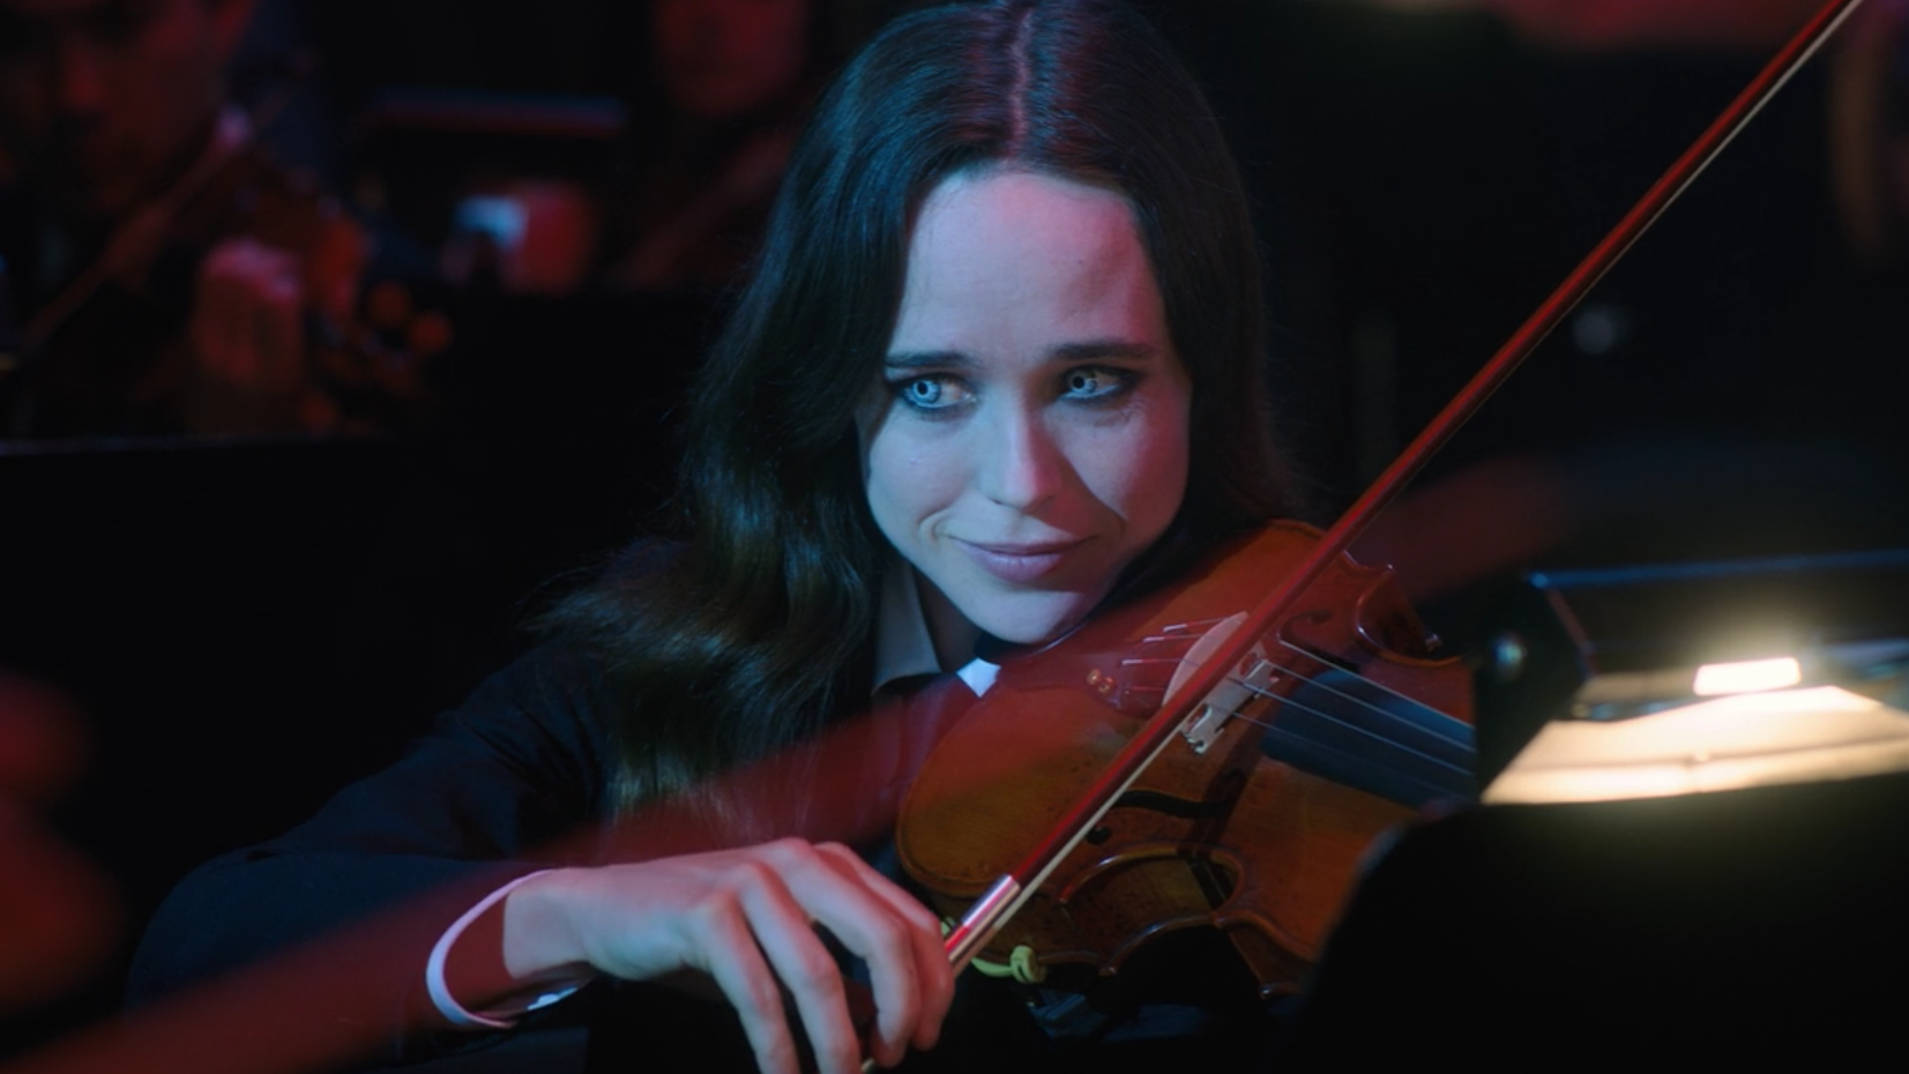 Can Ellen Page really play the violin in The Umbrella